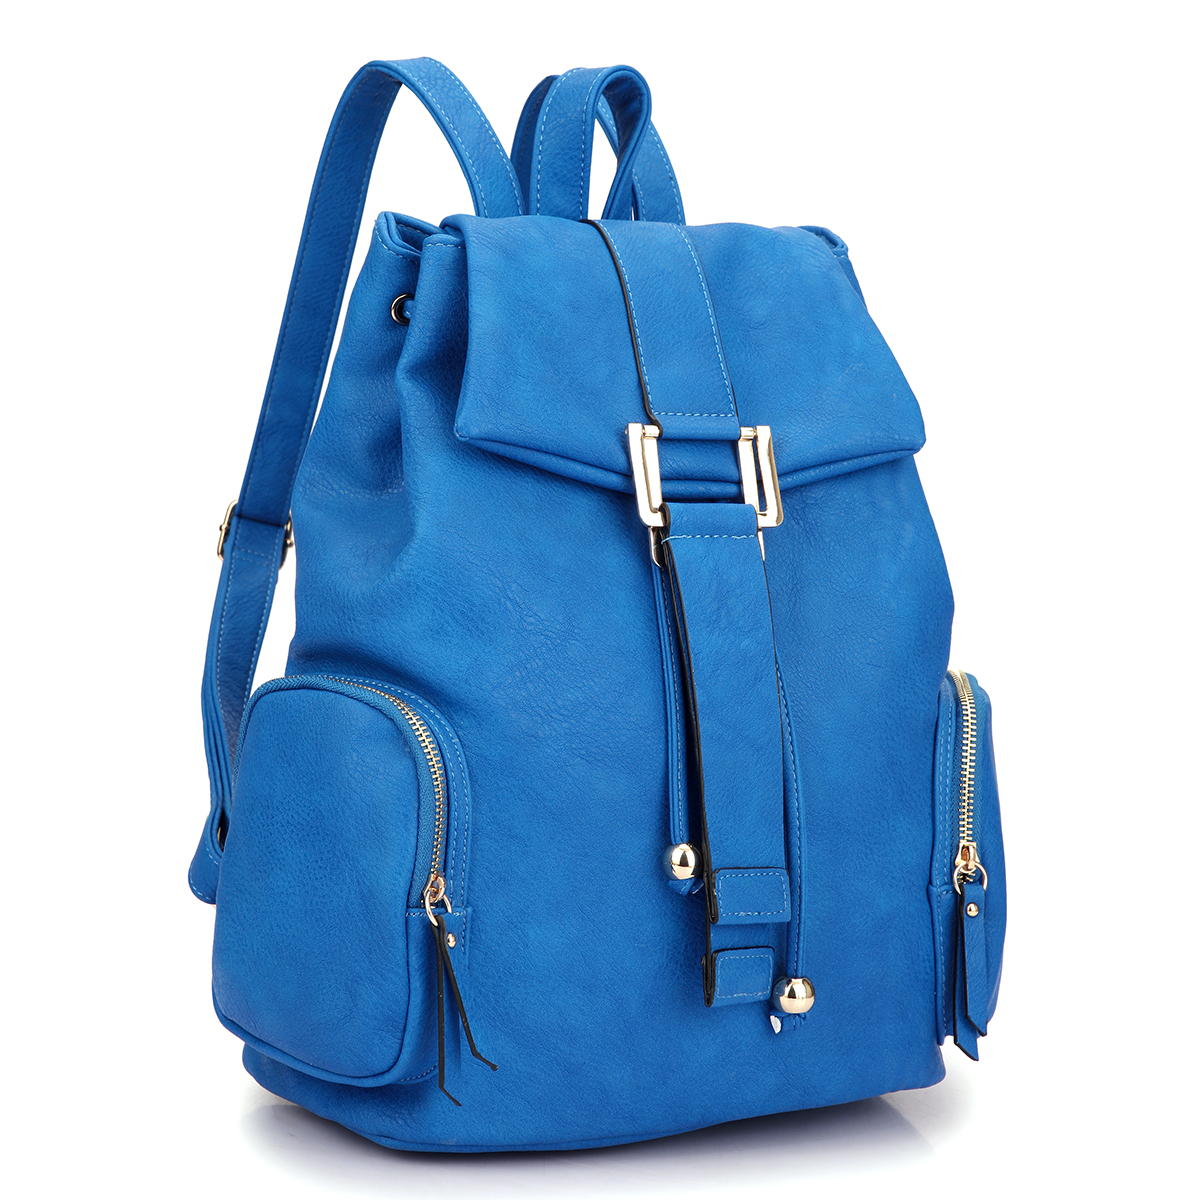 Faux Leather Drawsrting Accent Backpack with Side Pockets